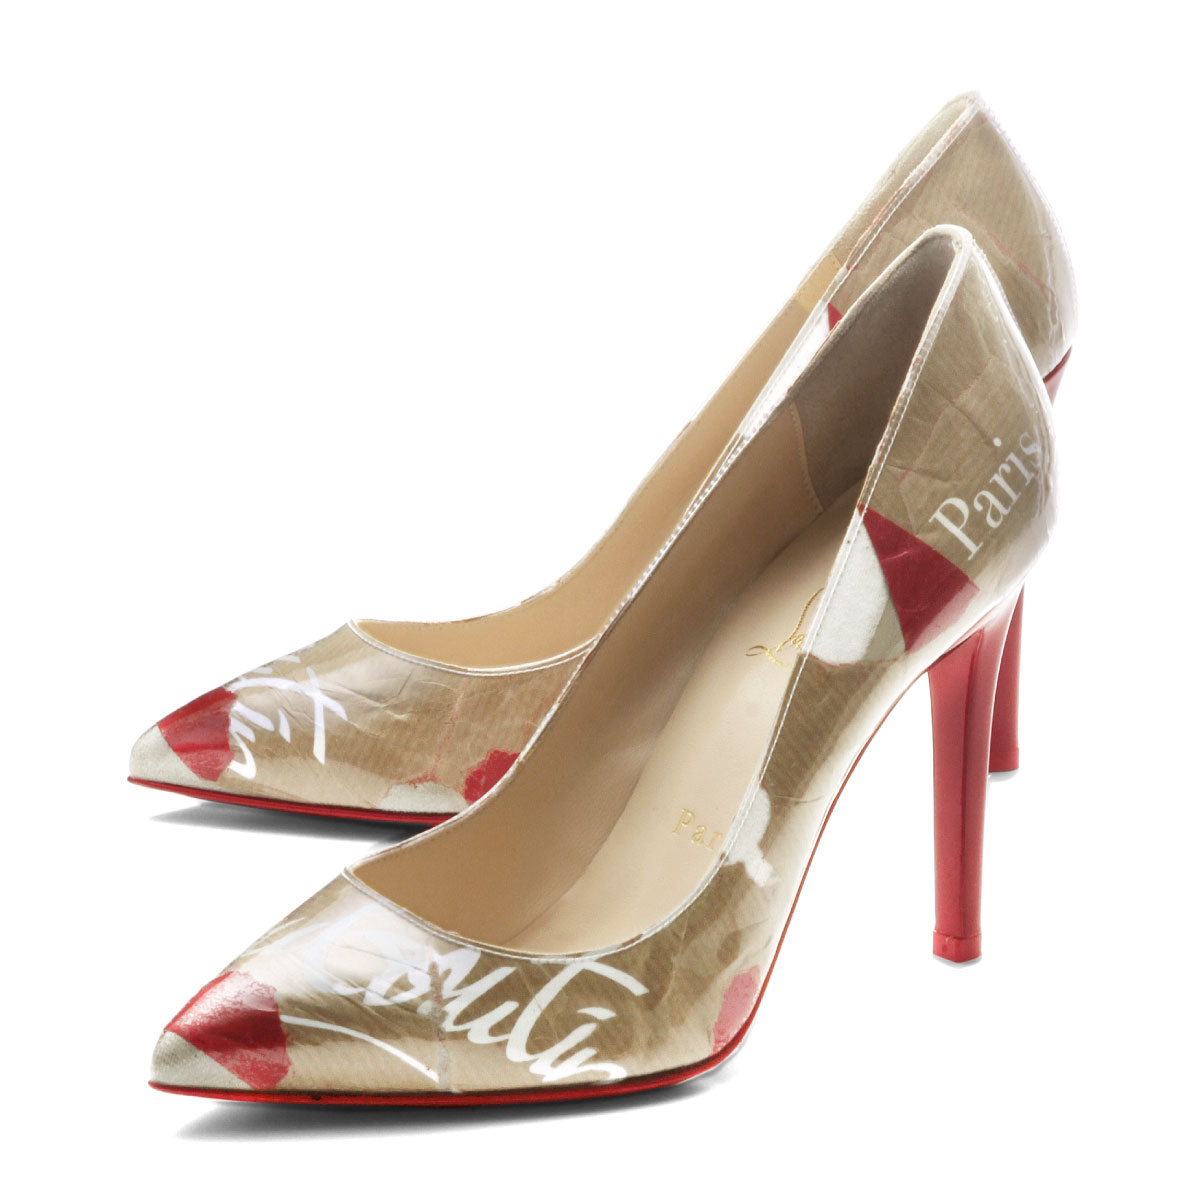 importshopdouble  クリスチャンルブタン Christian Louboutin shoes Lady s 3180597 H332  pointed toe pumps PIGALLE LOUBI KRAFT ピガールルビクラフト KRAFT LOUBI ... 9f0b7a8f1